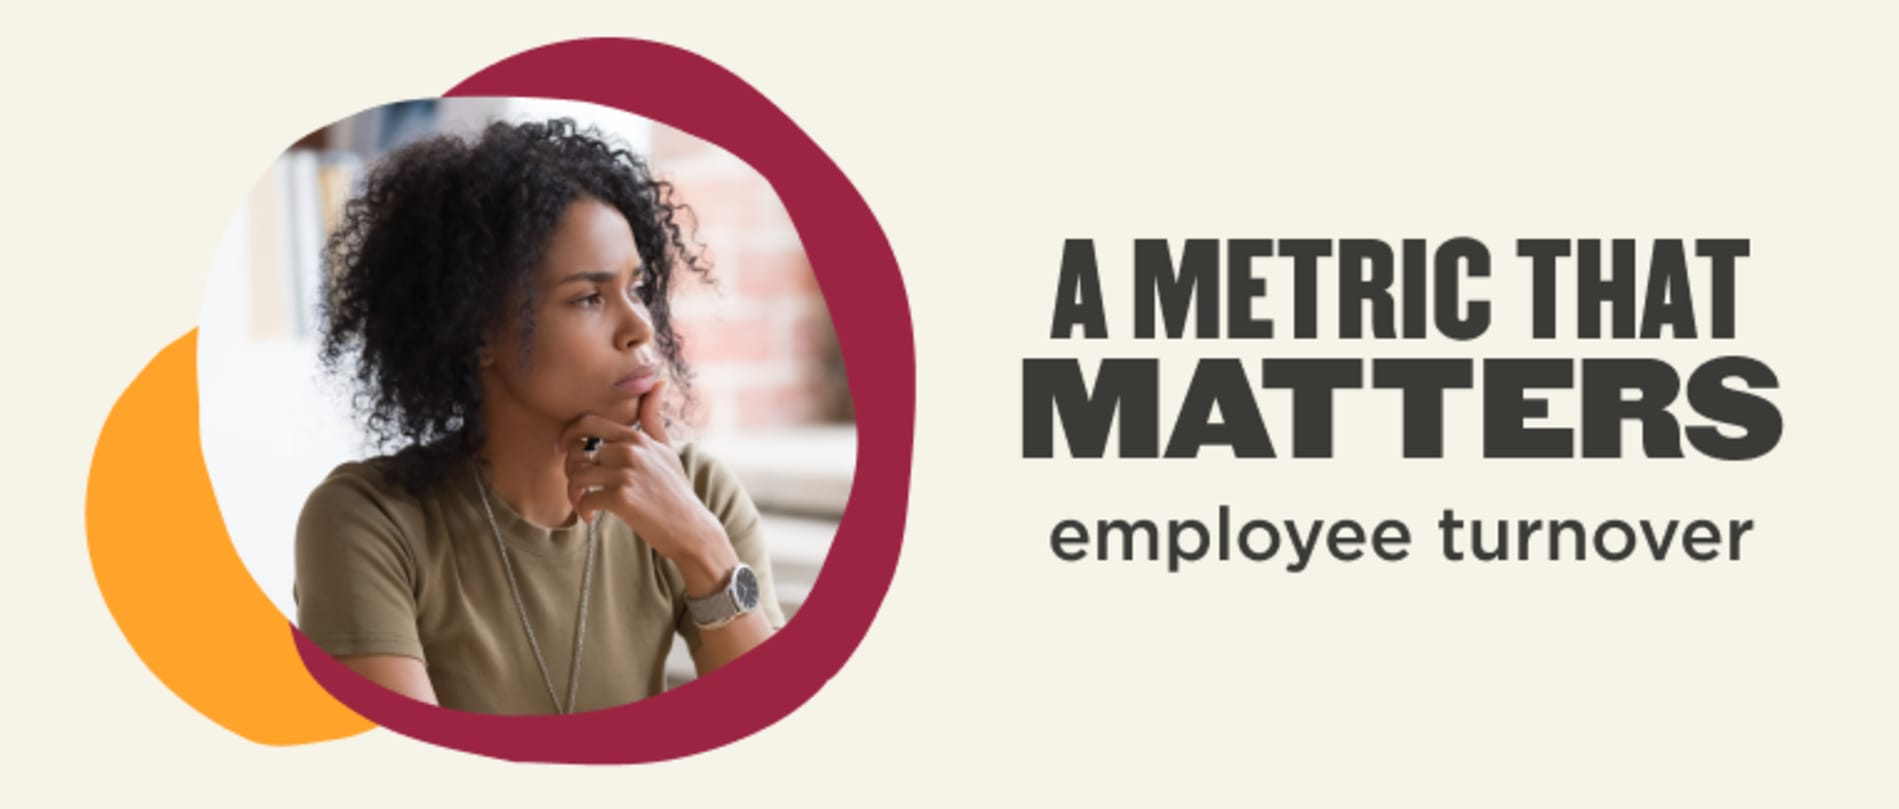 A metric that matters (employee turnover)